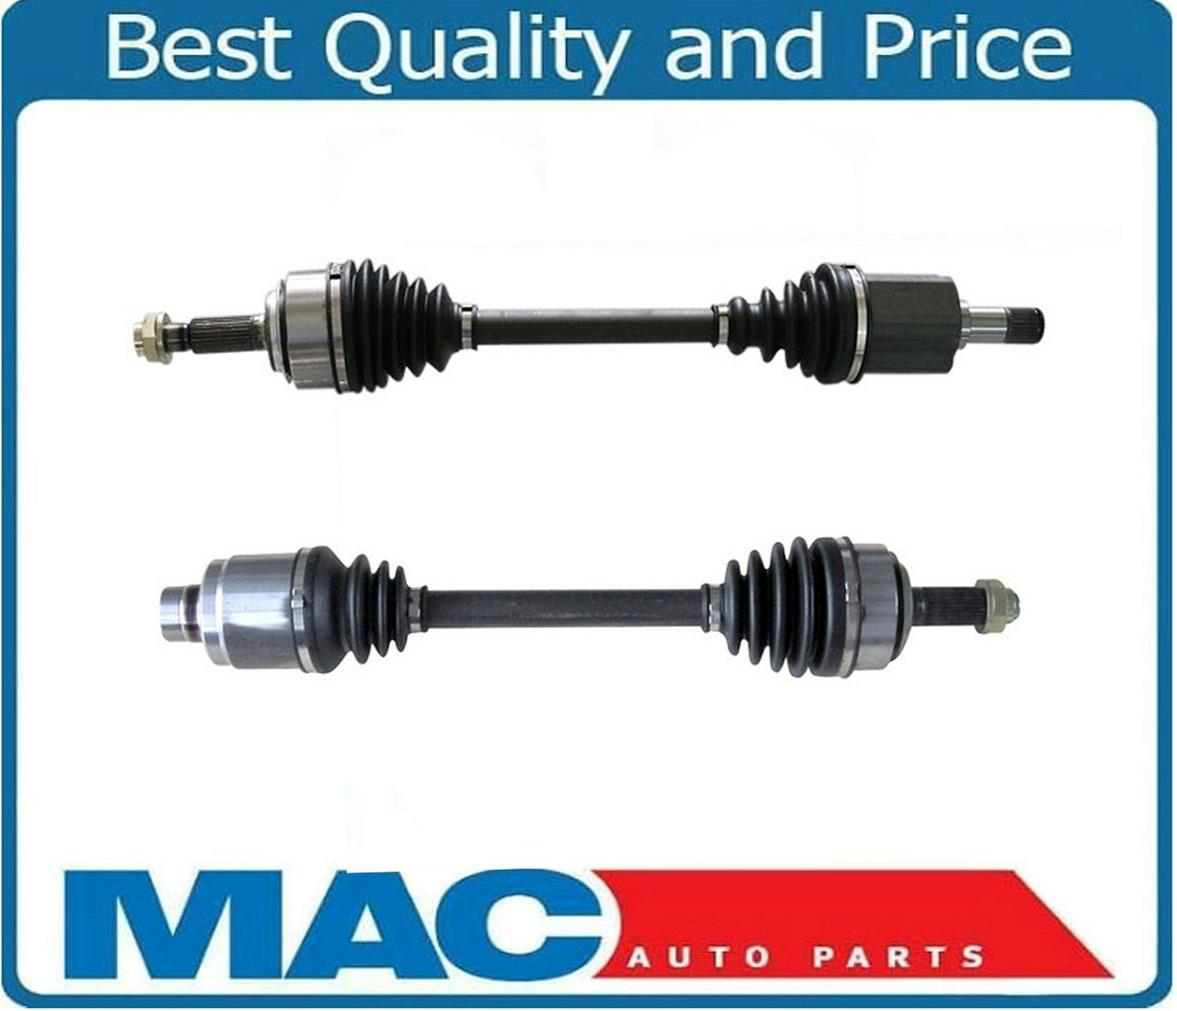 Front Left & Right CV Axles For Acura TL 3.2L & TYPE S